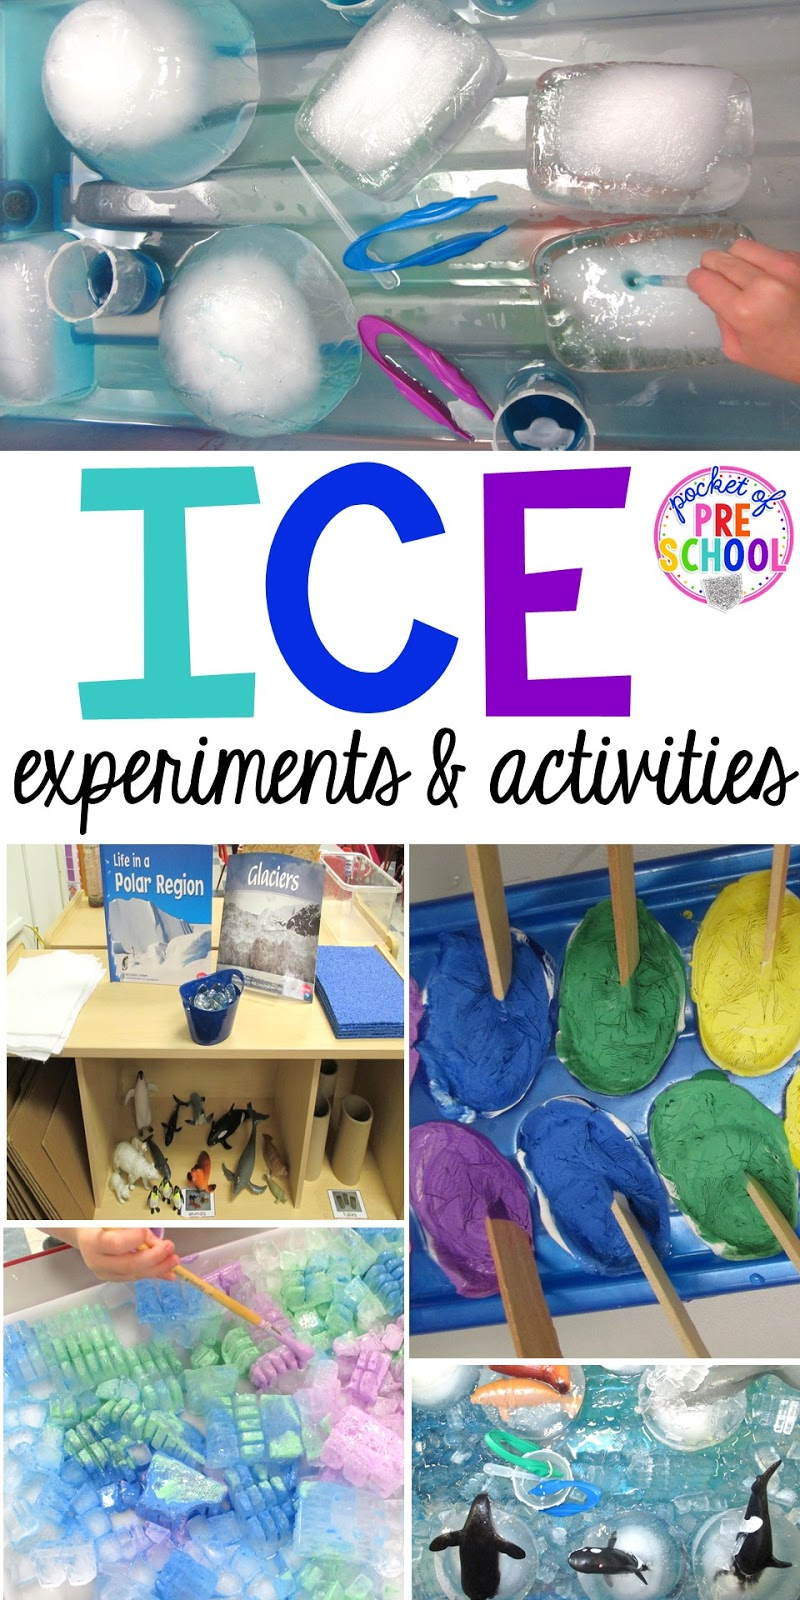 winter theme ideas for preschool arctic activities and experiments pocket of preschool 570